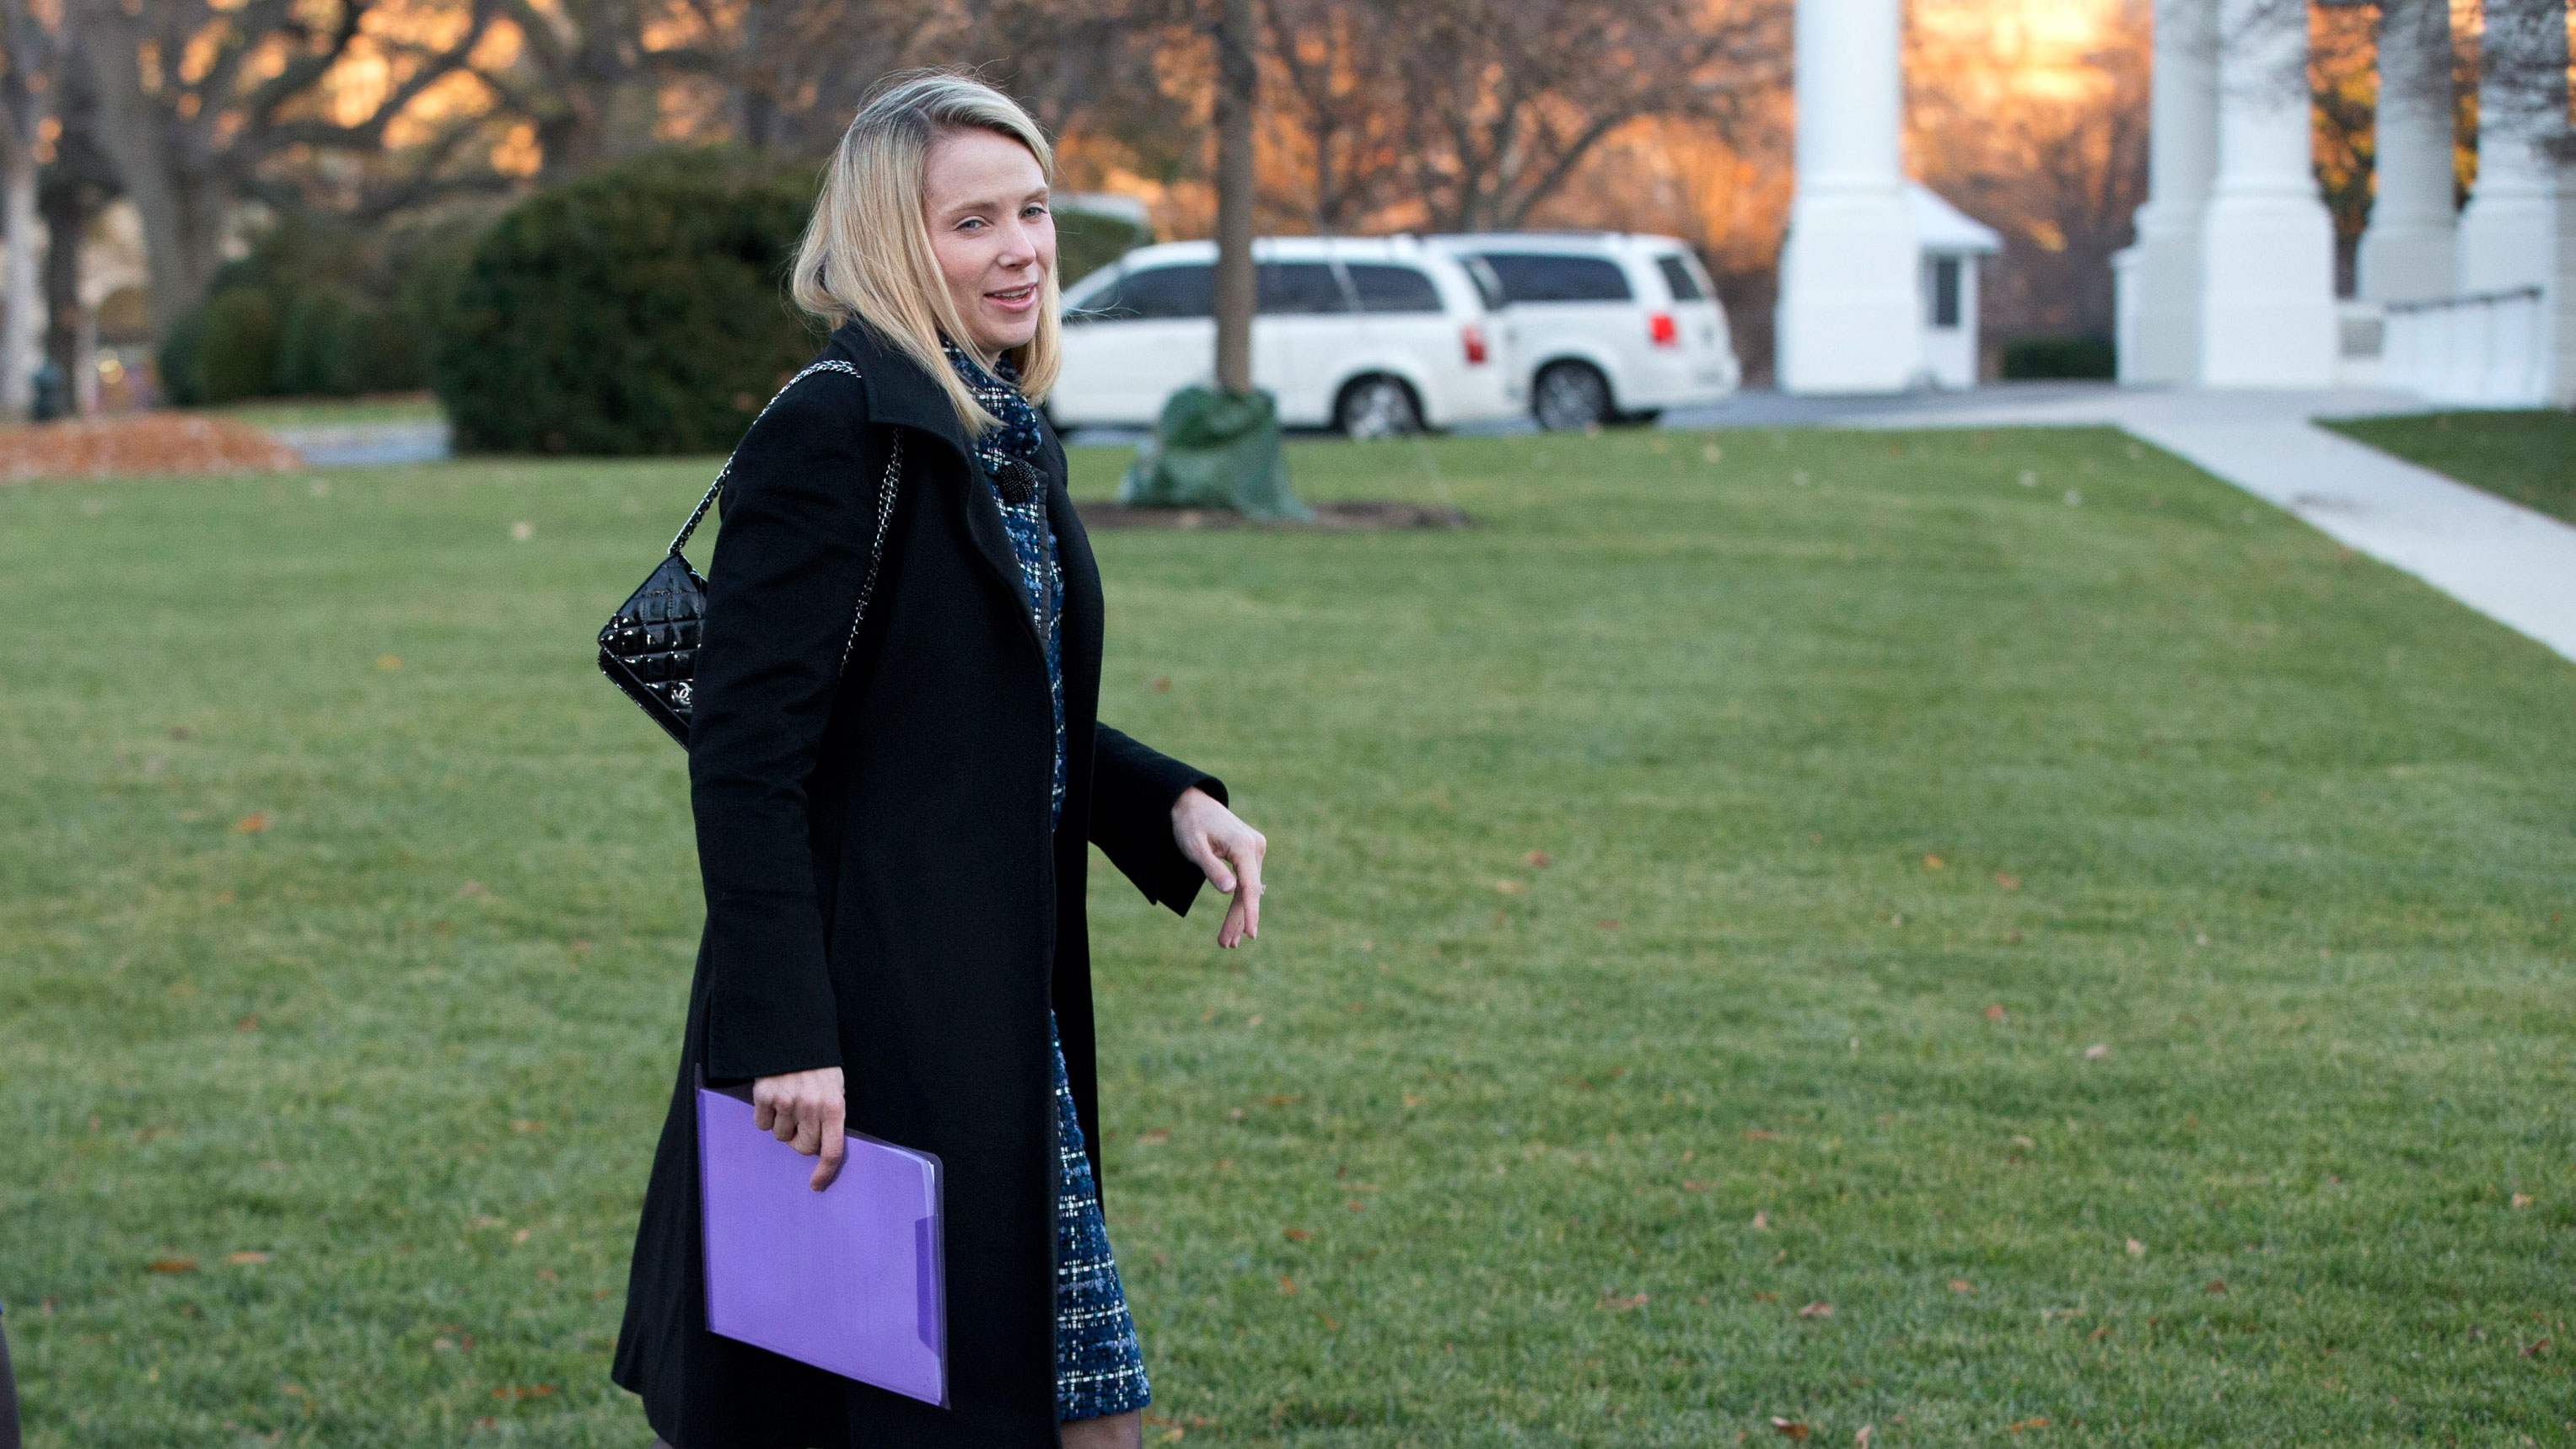 Marissa Mayer, CEO of Yahoo Inc., right, and an unidentified woman, arrive at the White House to attend a meeting of business leaders with President Barack Obama and Vice President Biden at the White House in Washington, Wednesday, Nov. 28, 2012. (AP Photo/Jacquelyn Martin)